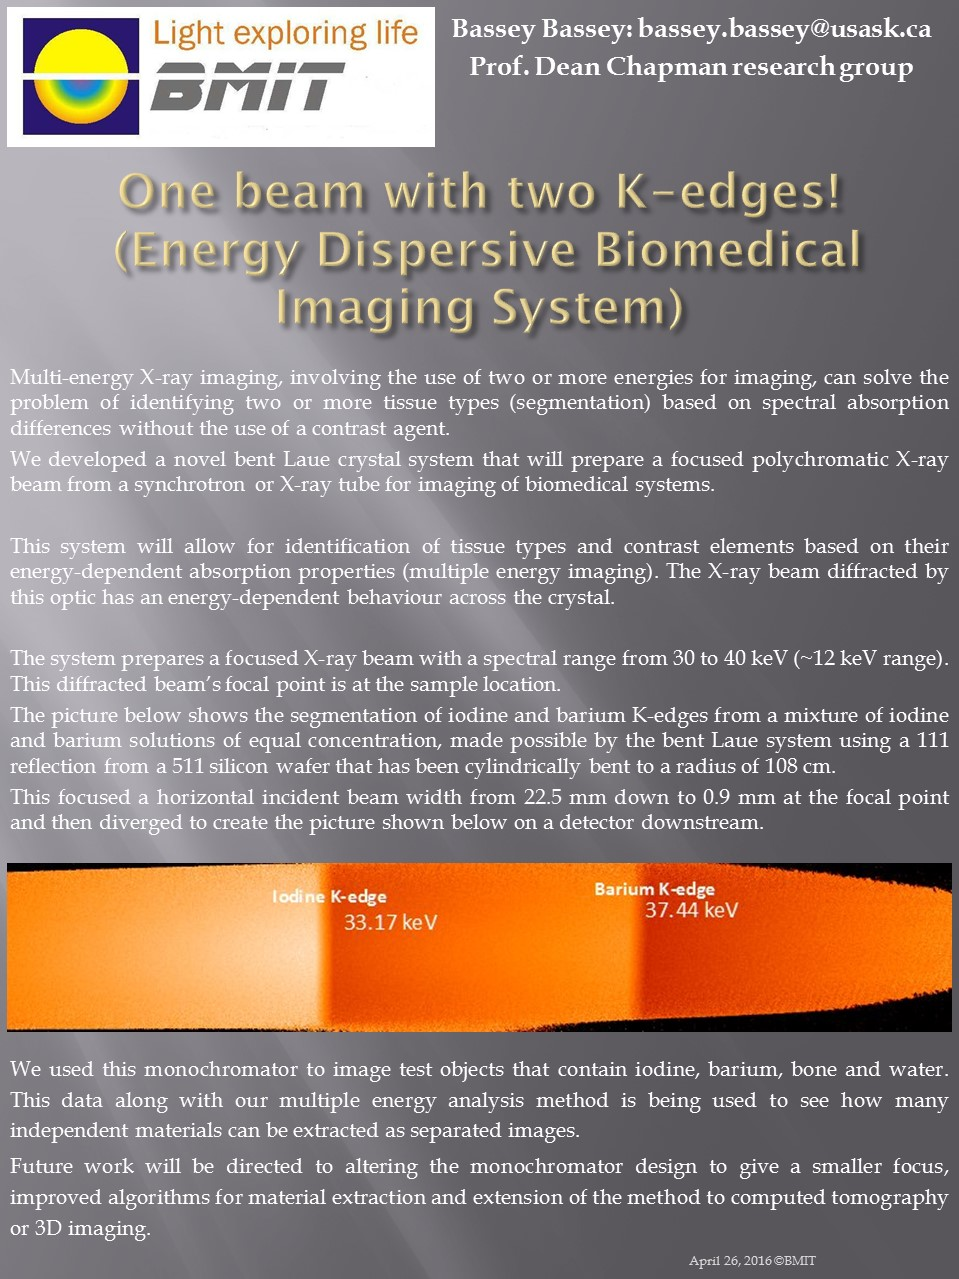 Energy Dispersive Biomedical Imaging System Image